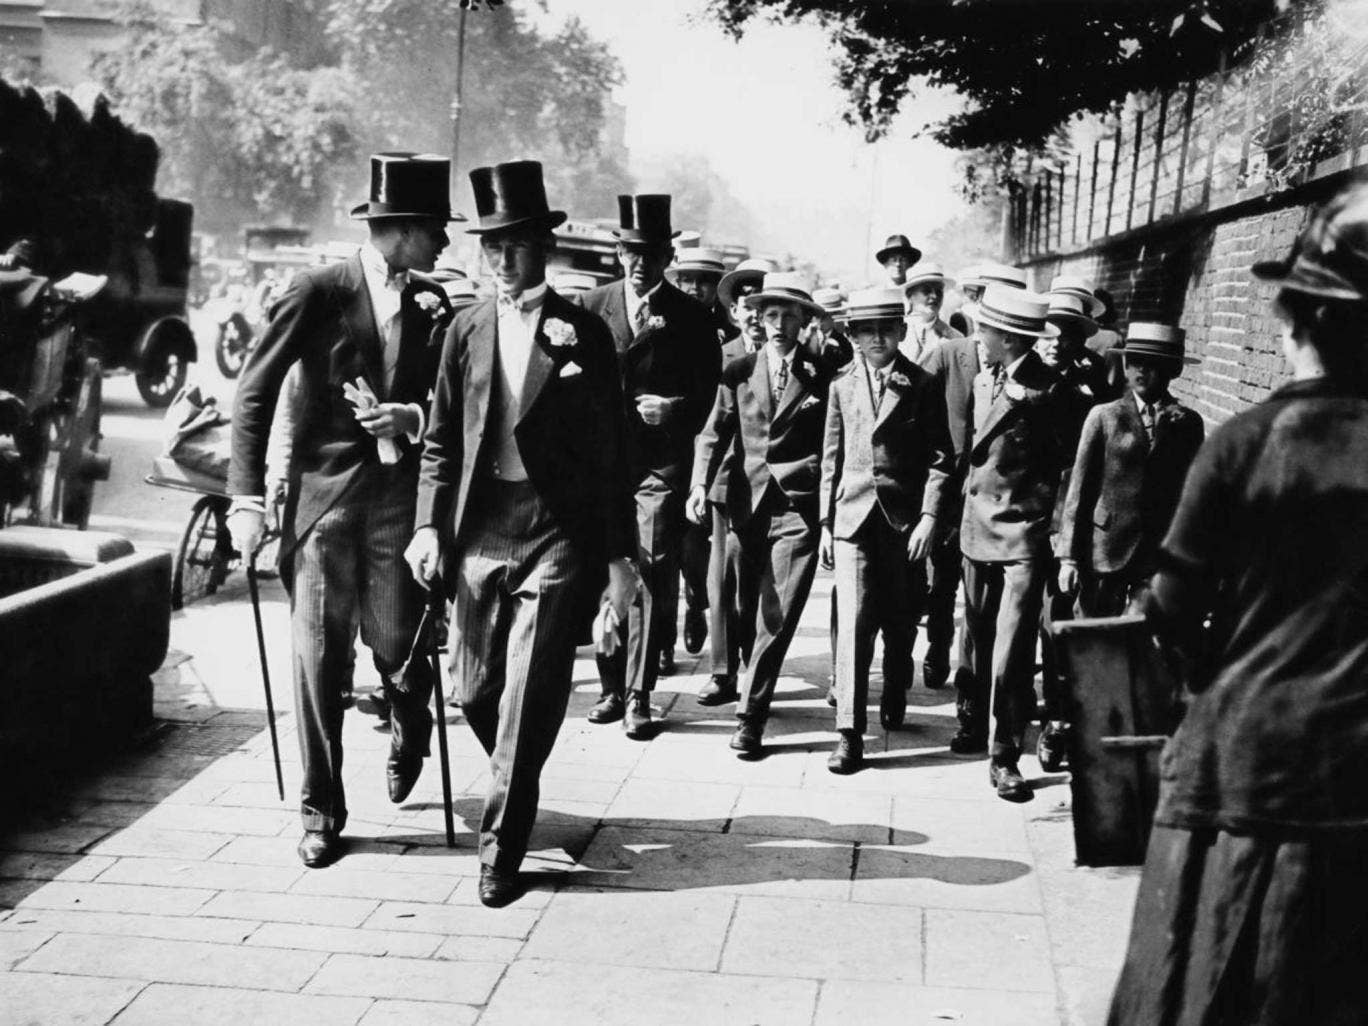 Eton schoolboys arriving at Lord's Cricket Ground in 1928